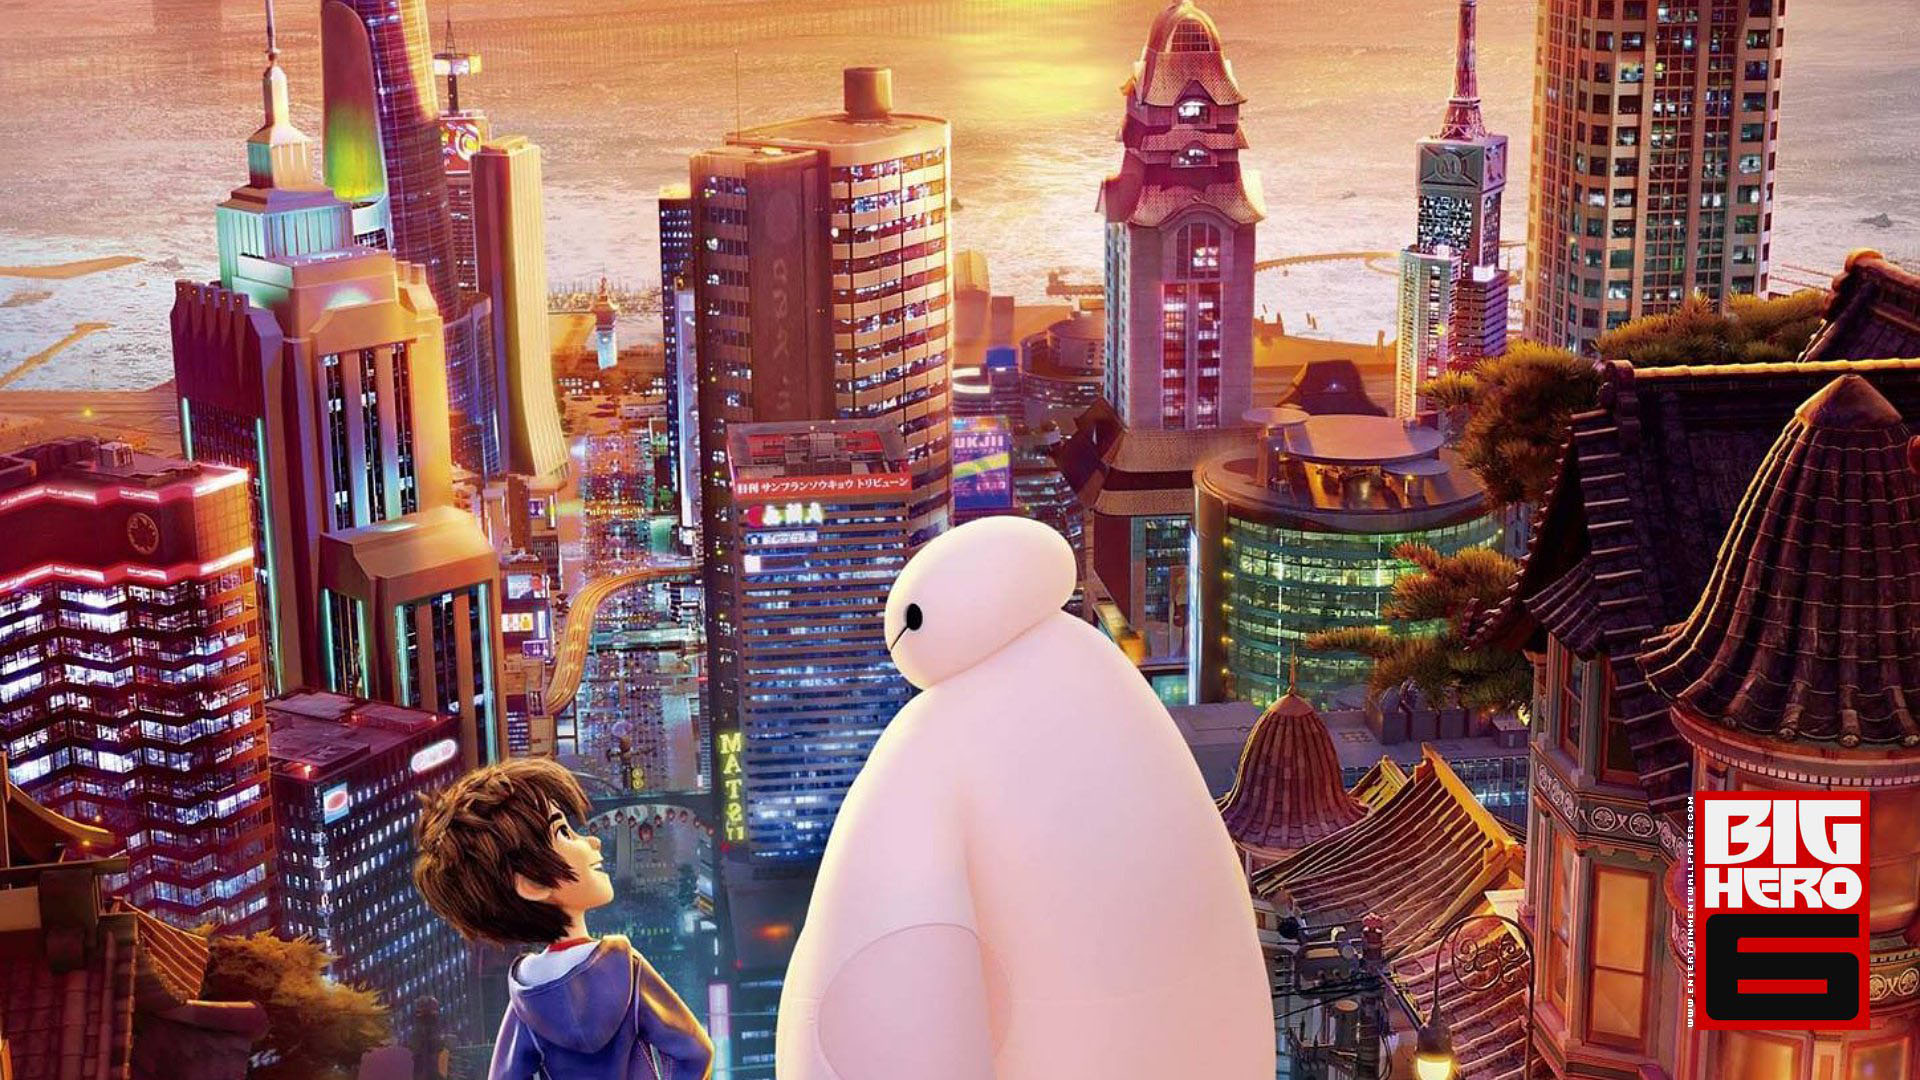 Big Hero 6 Wallpaper - WallpaperSafari